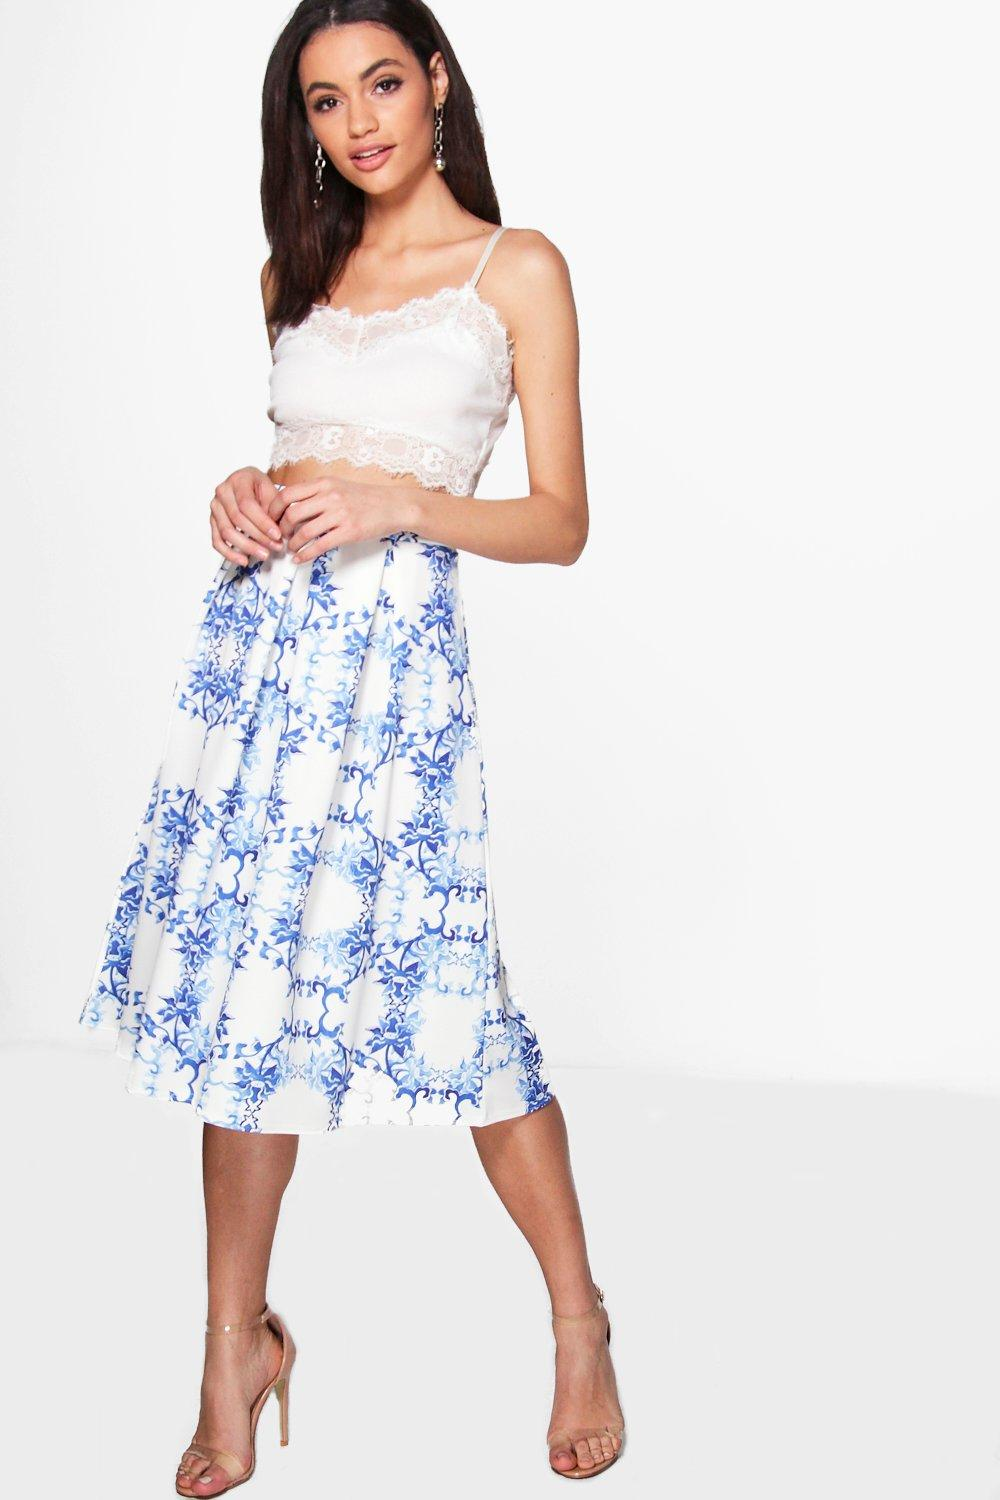 Skirts | Shop all Skirts for women at boohoo UK